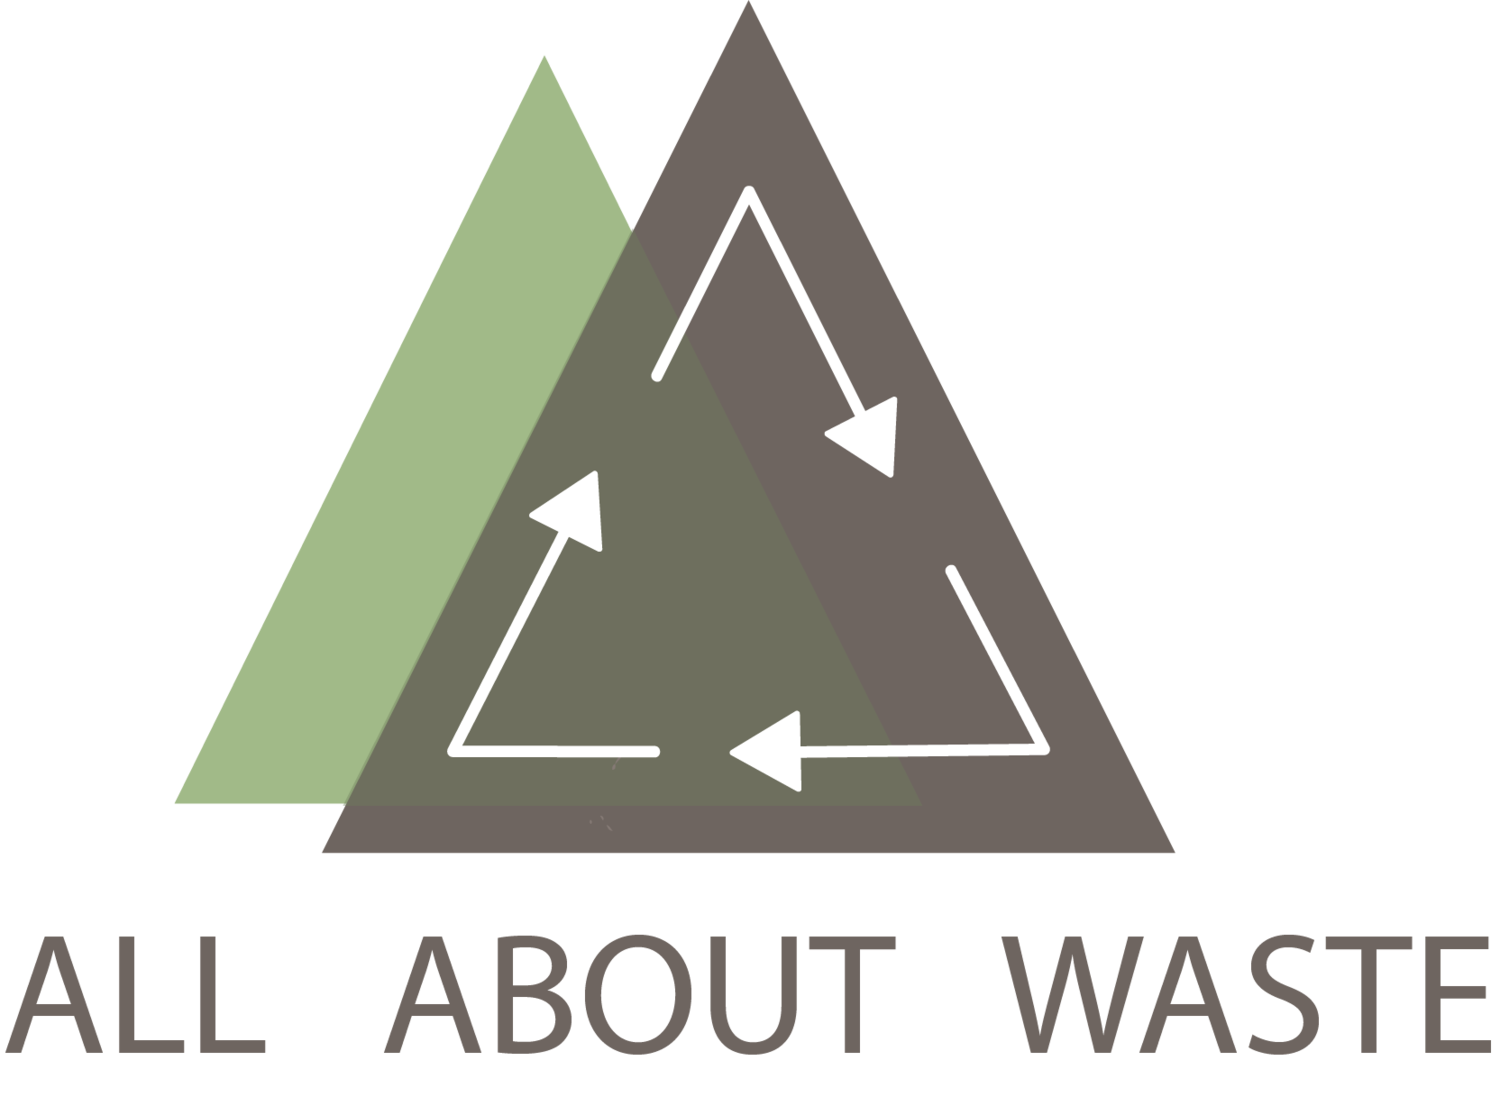 All About Waste: Zero Waste and Sustainability Consulting